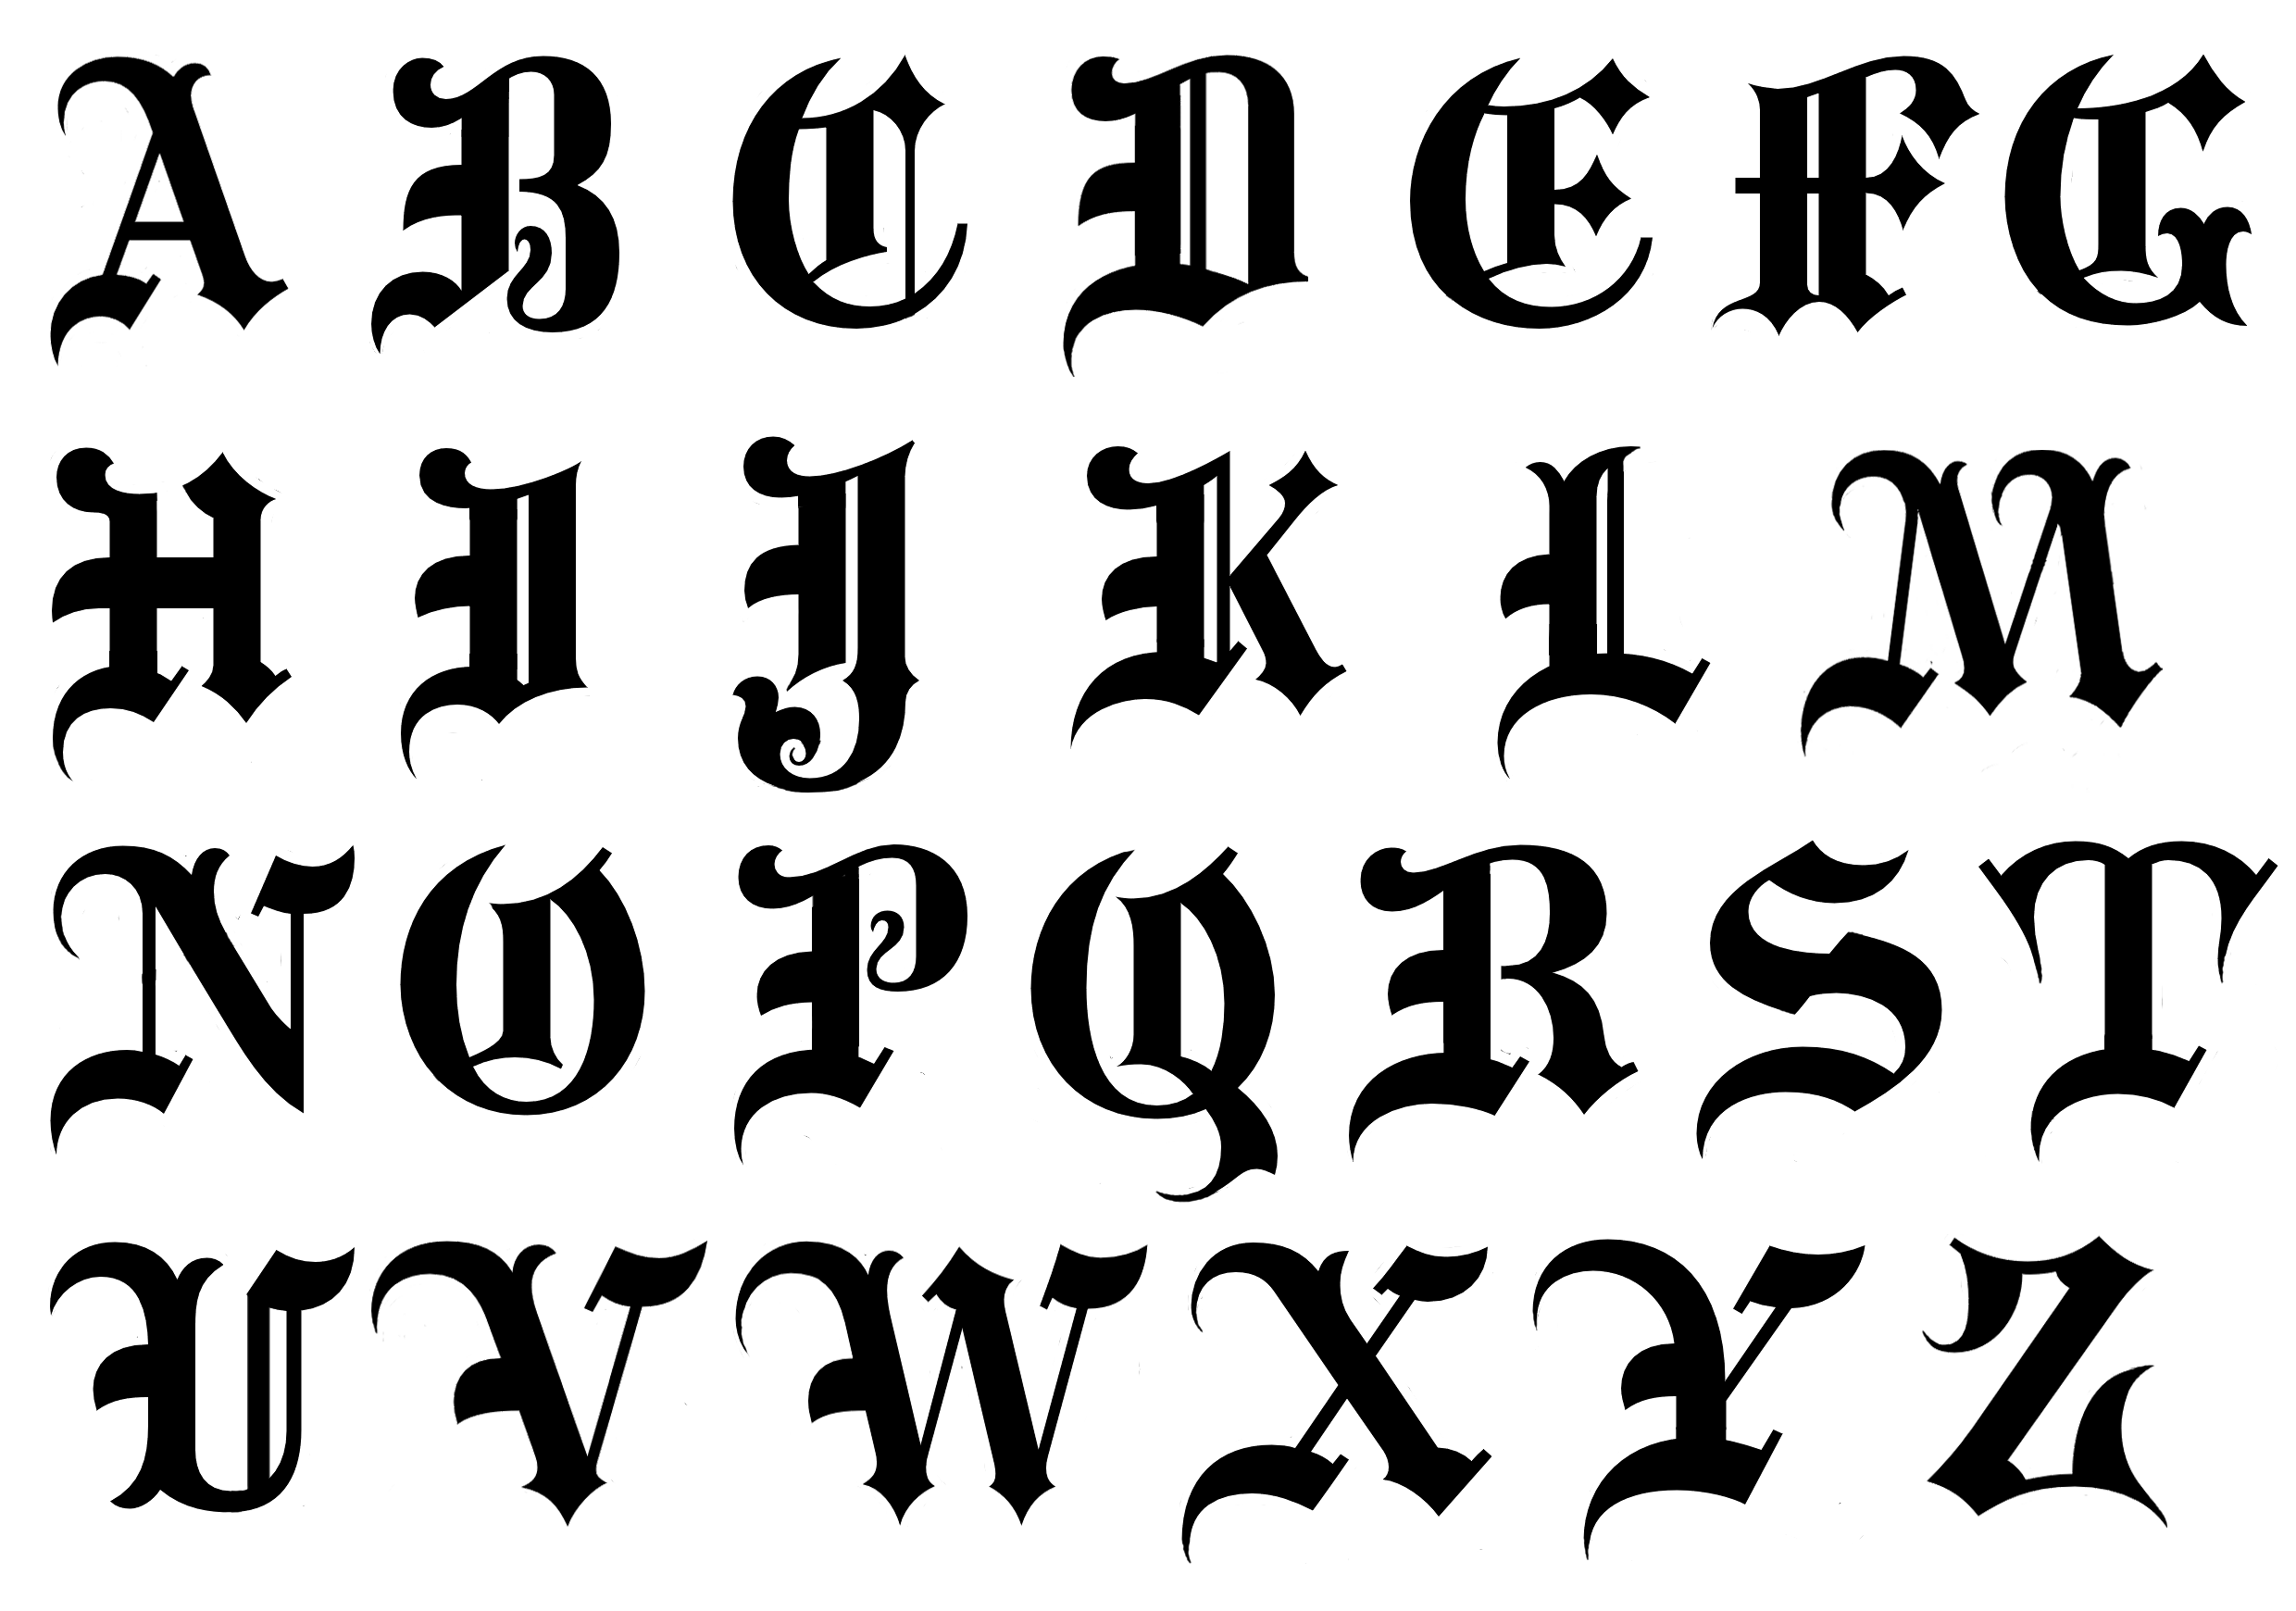 Old Calligraphy Font Free Goth Letters Related Keywords And Suggestions Goth Letters